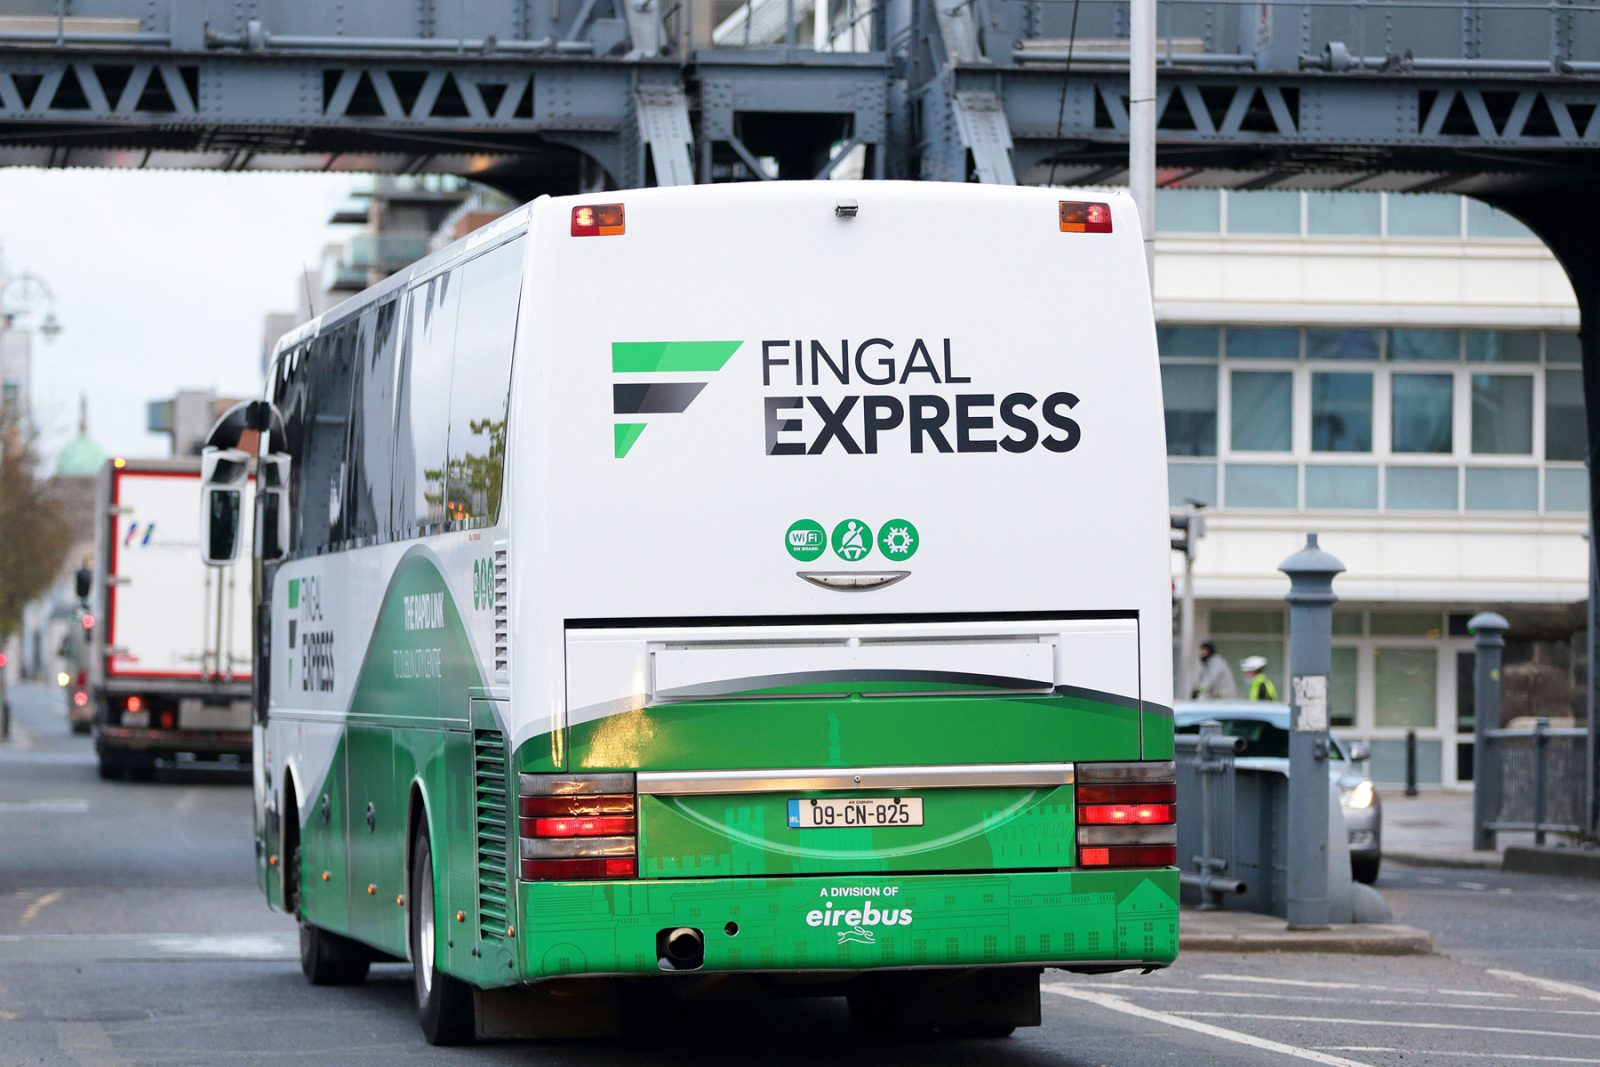 fingal express